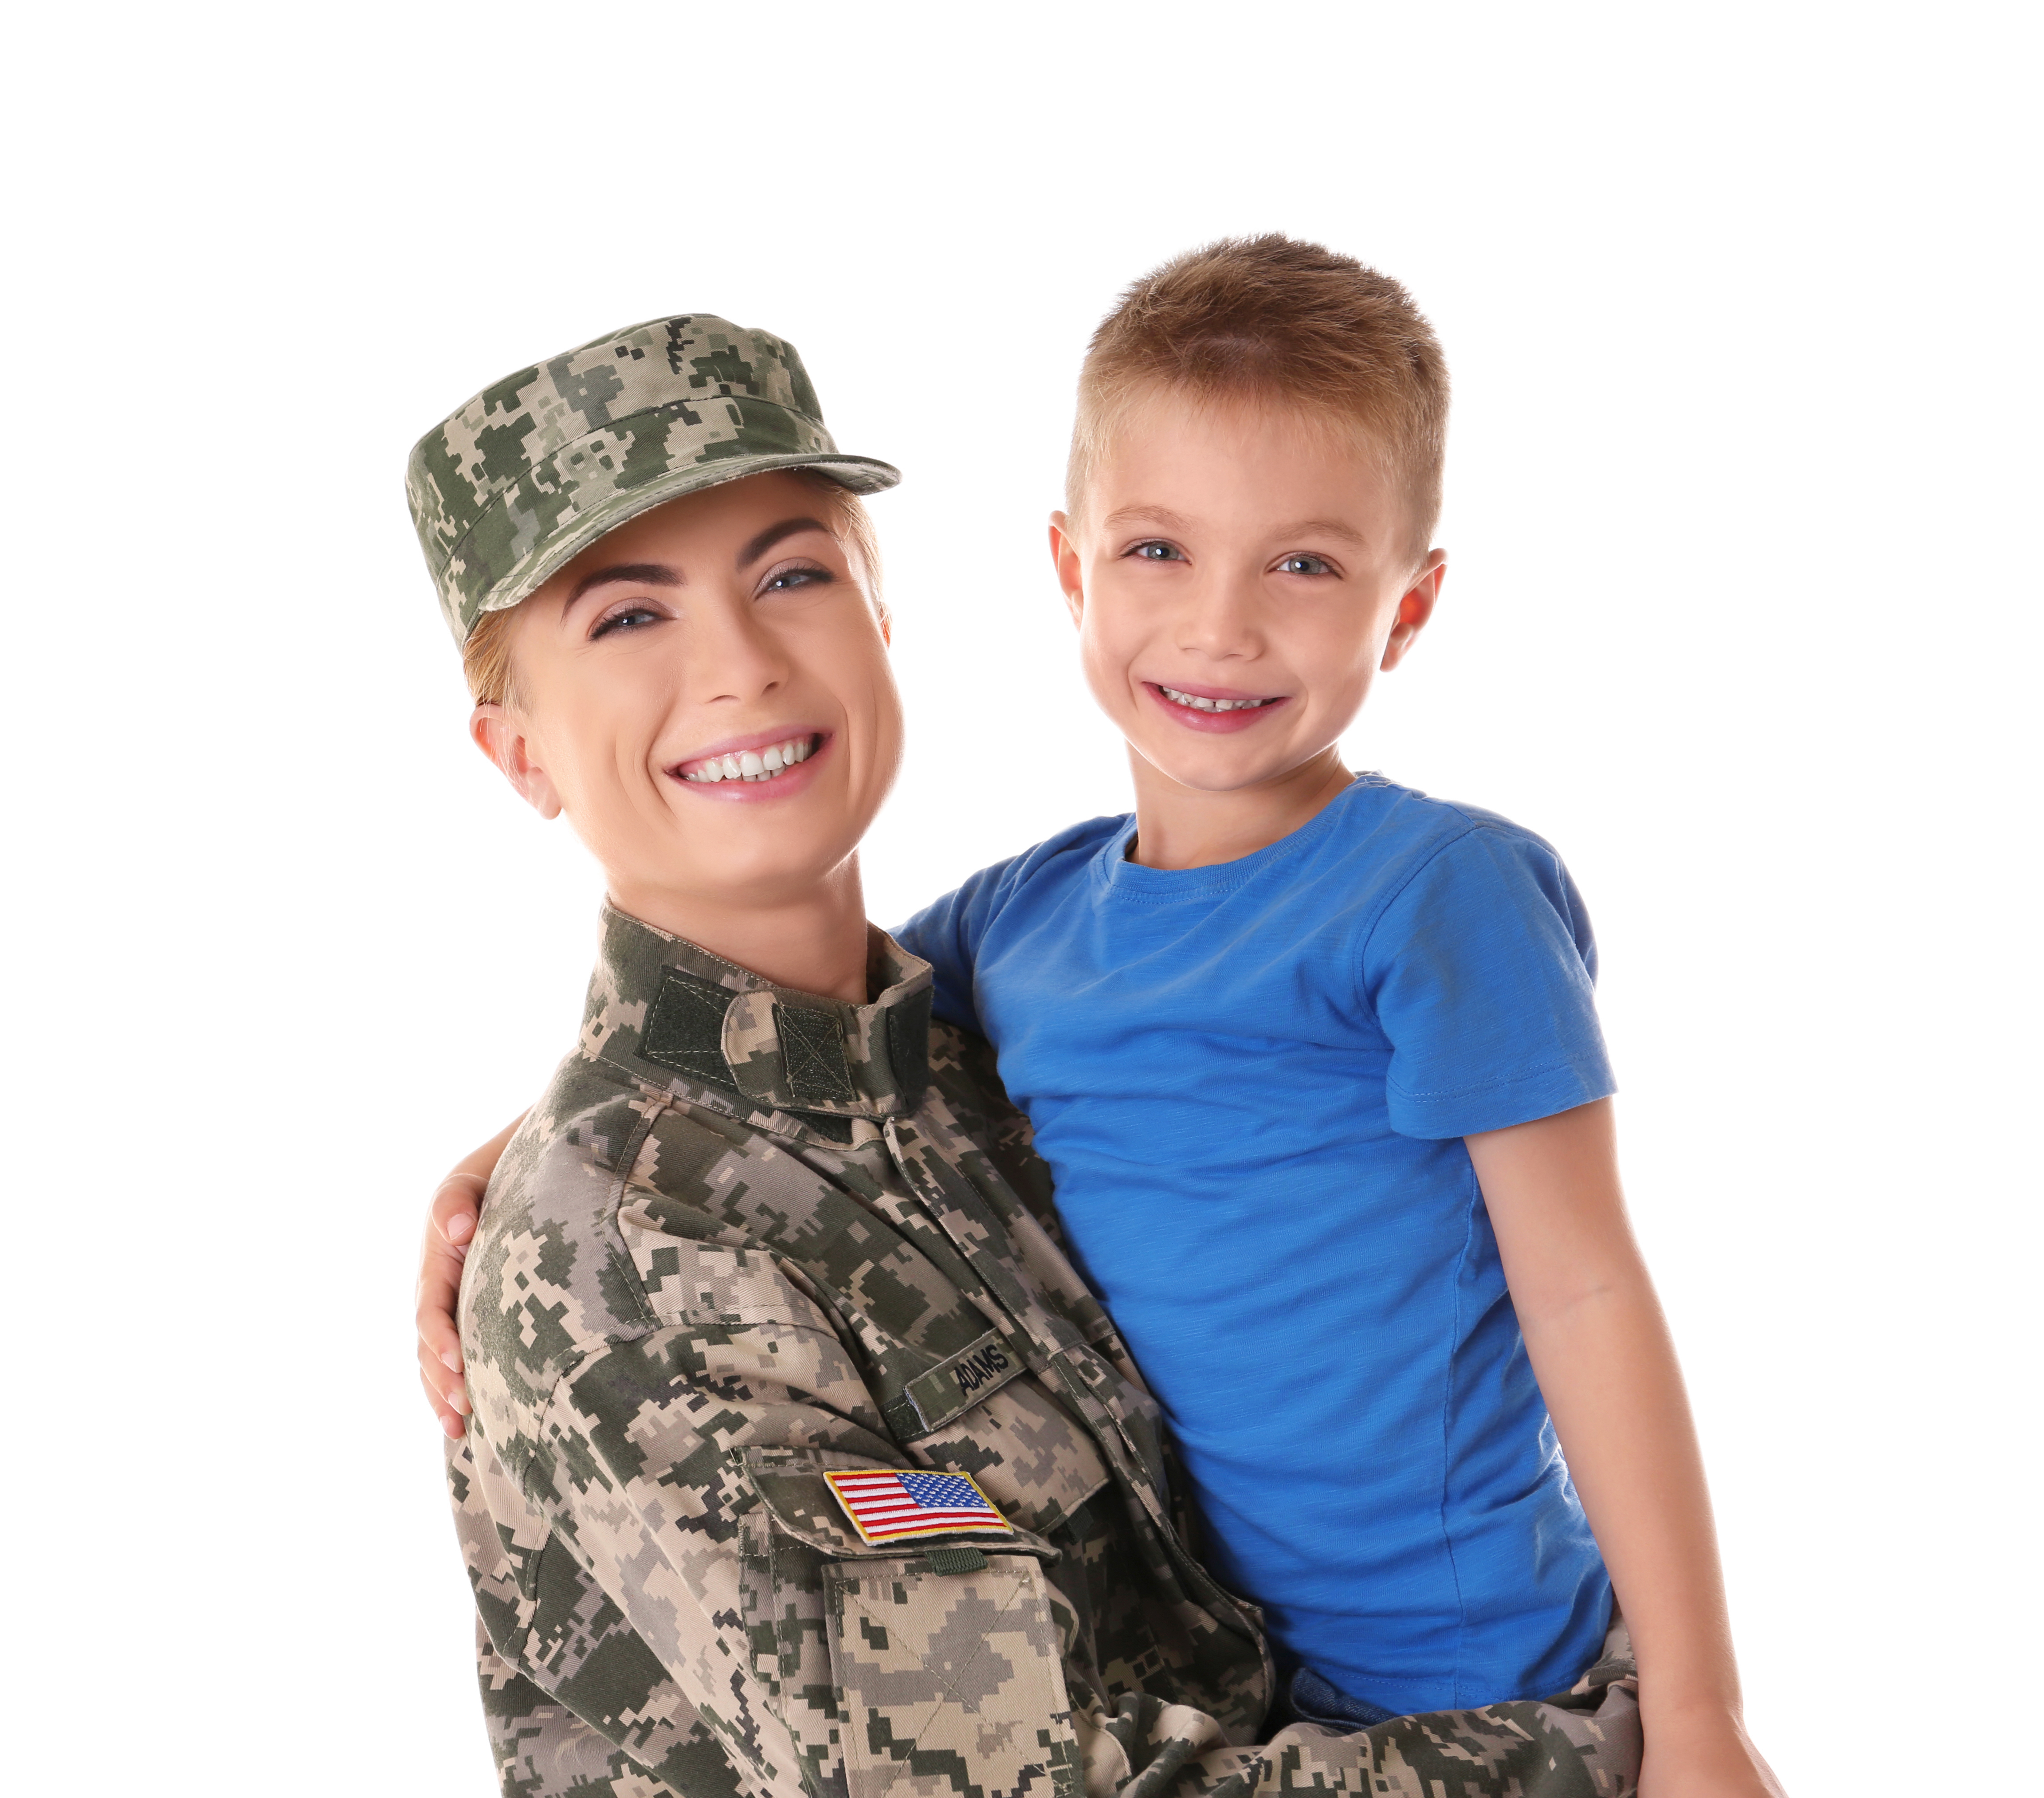 Portrait of woman soldier and her son on